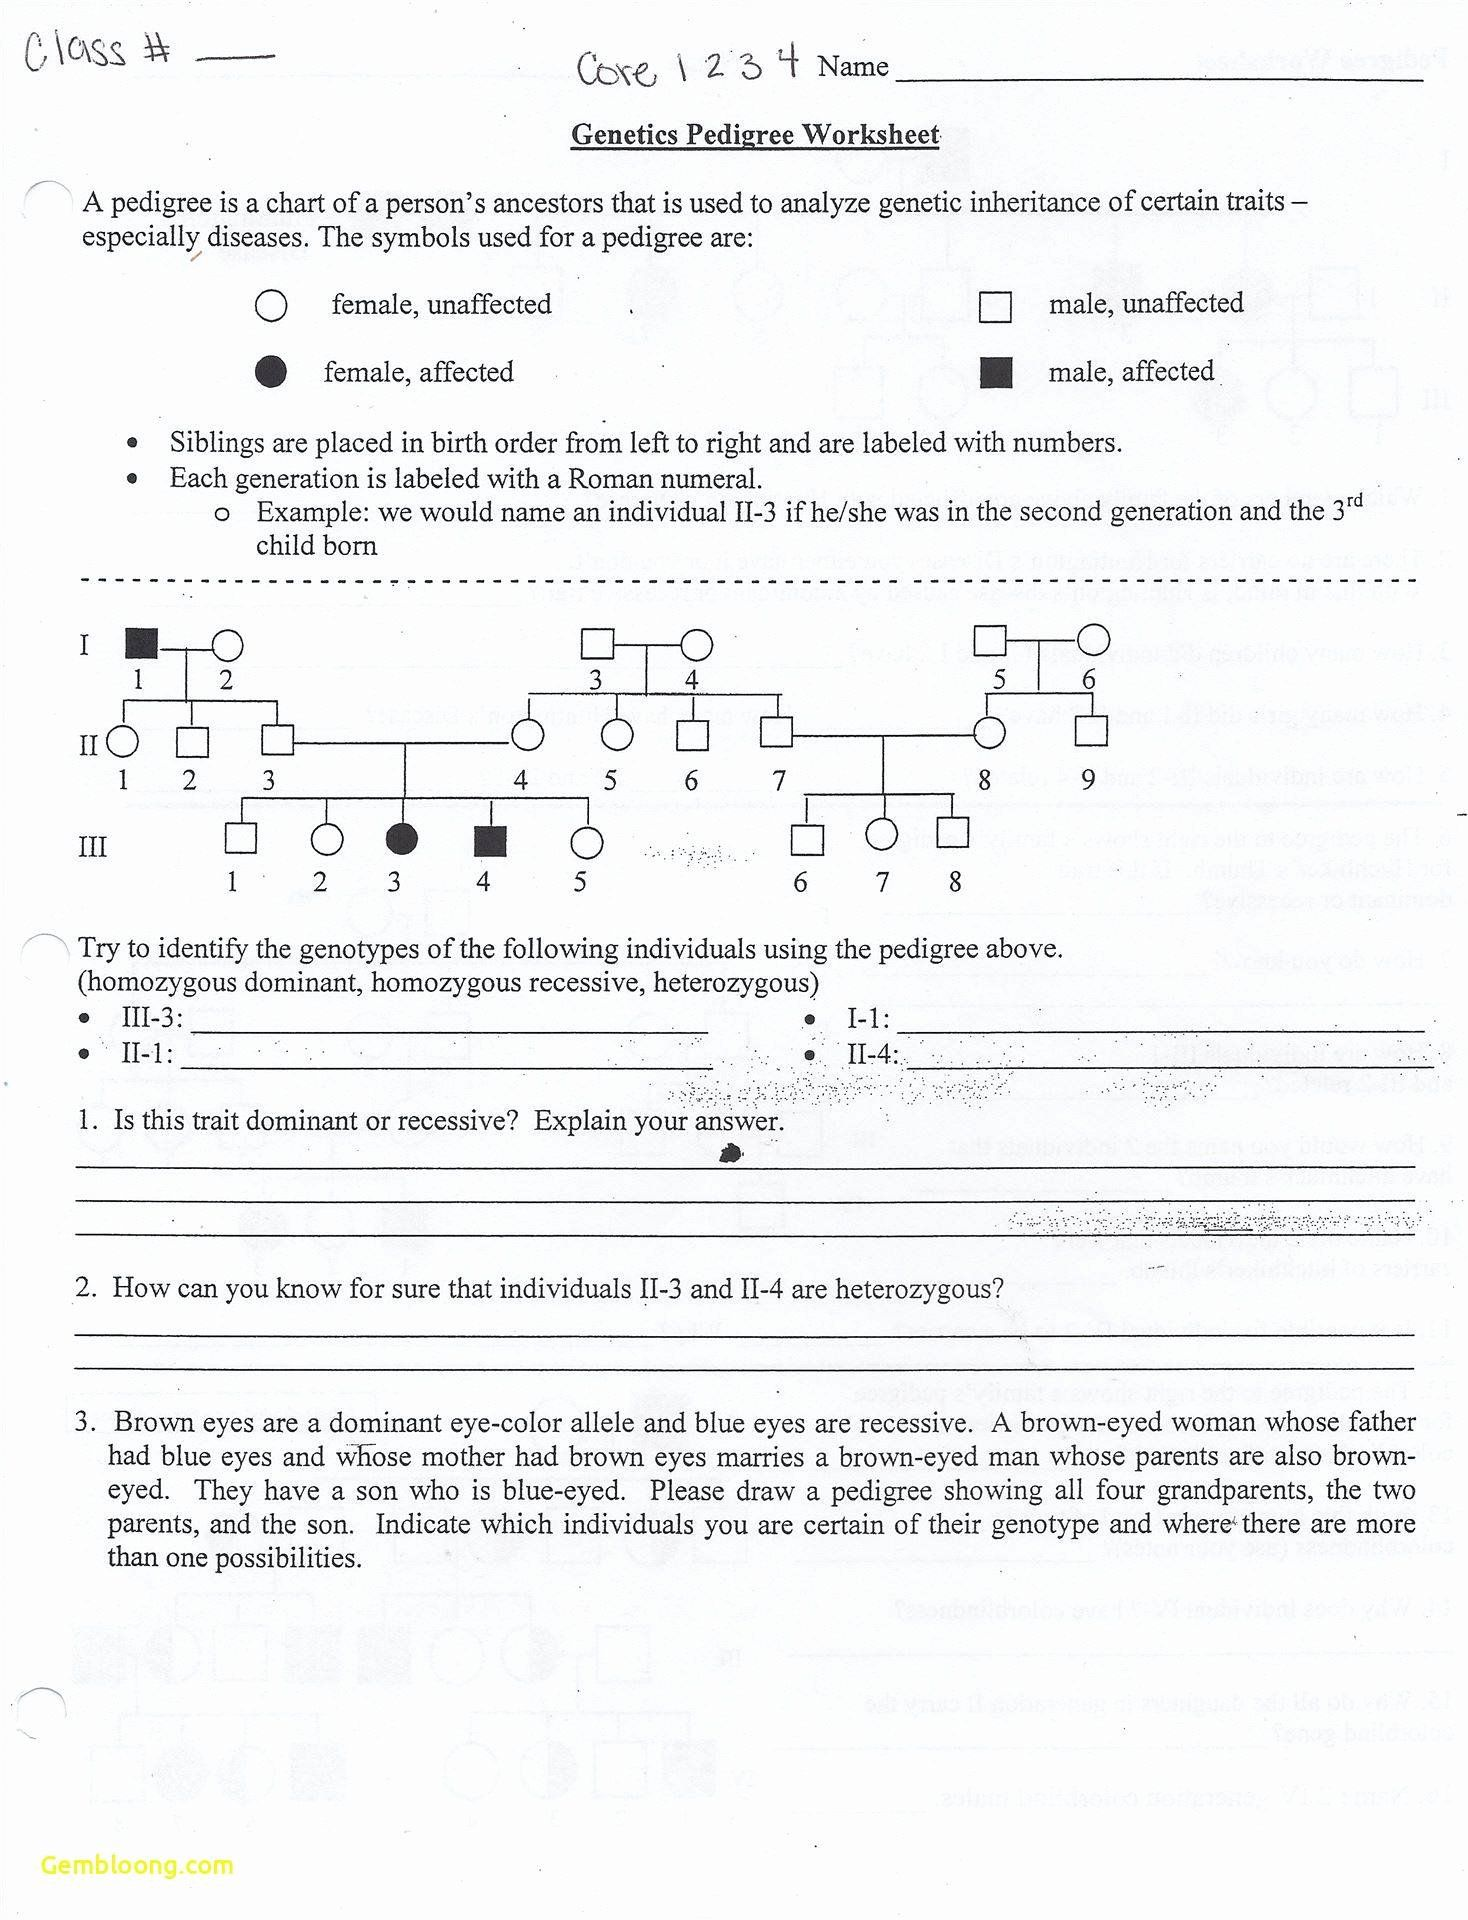 Mendelian Worksheet Answer Key Best Of Mendelian